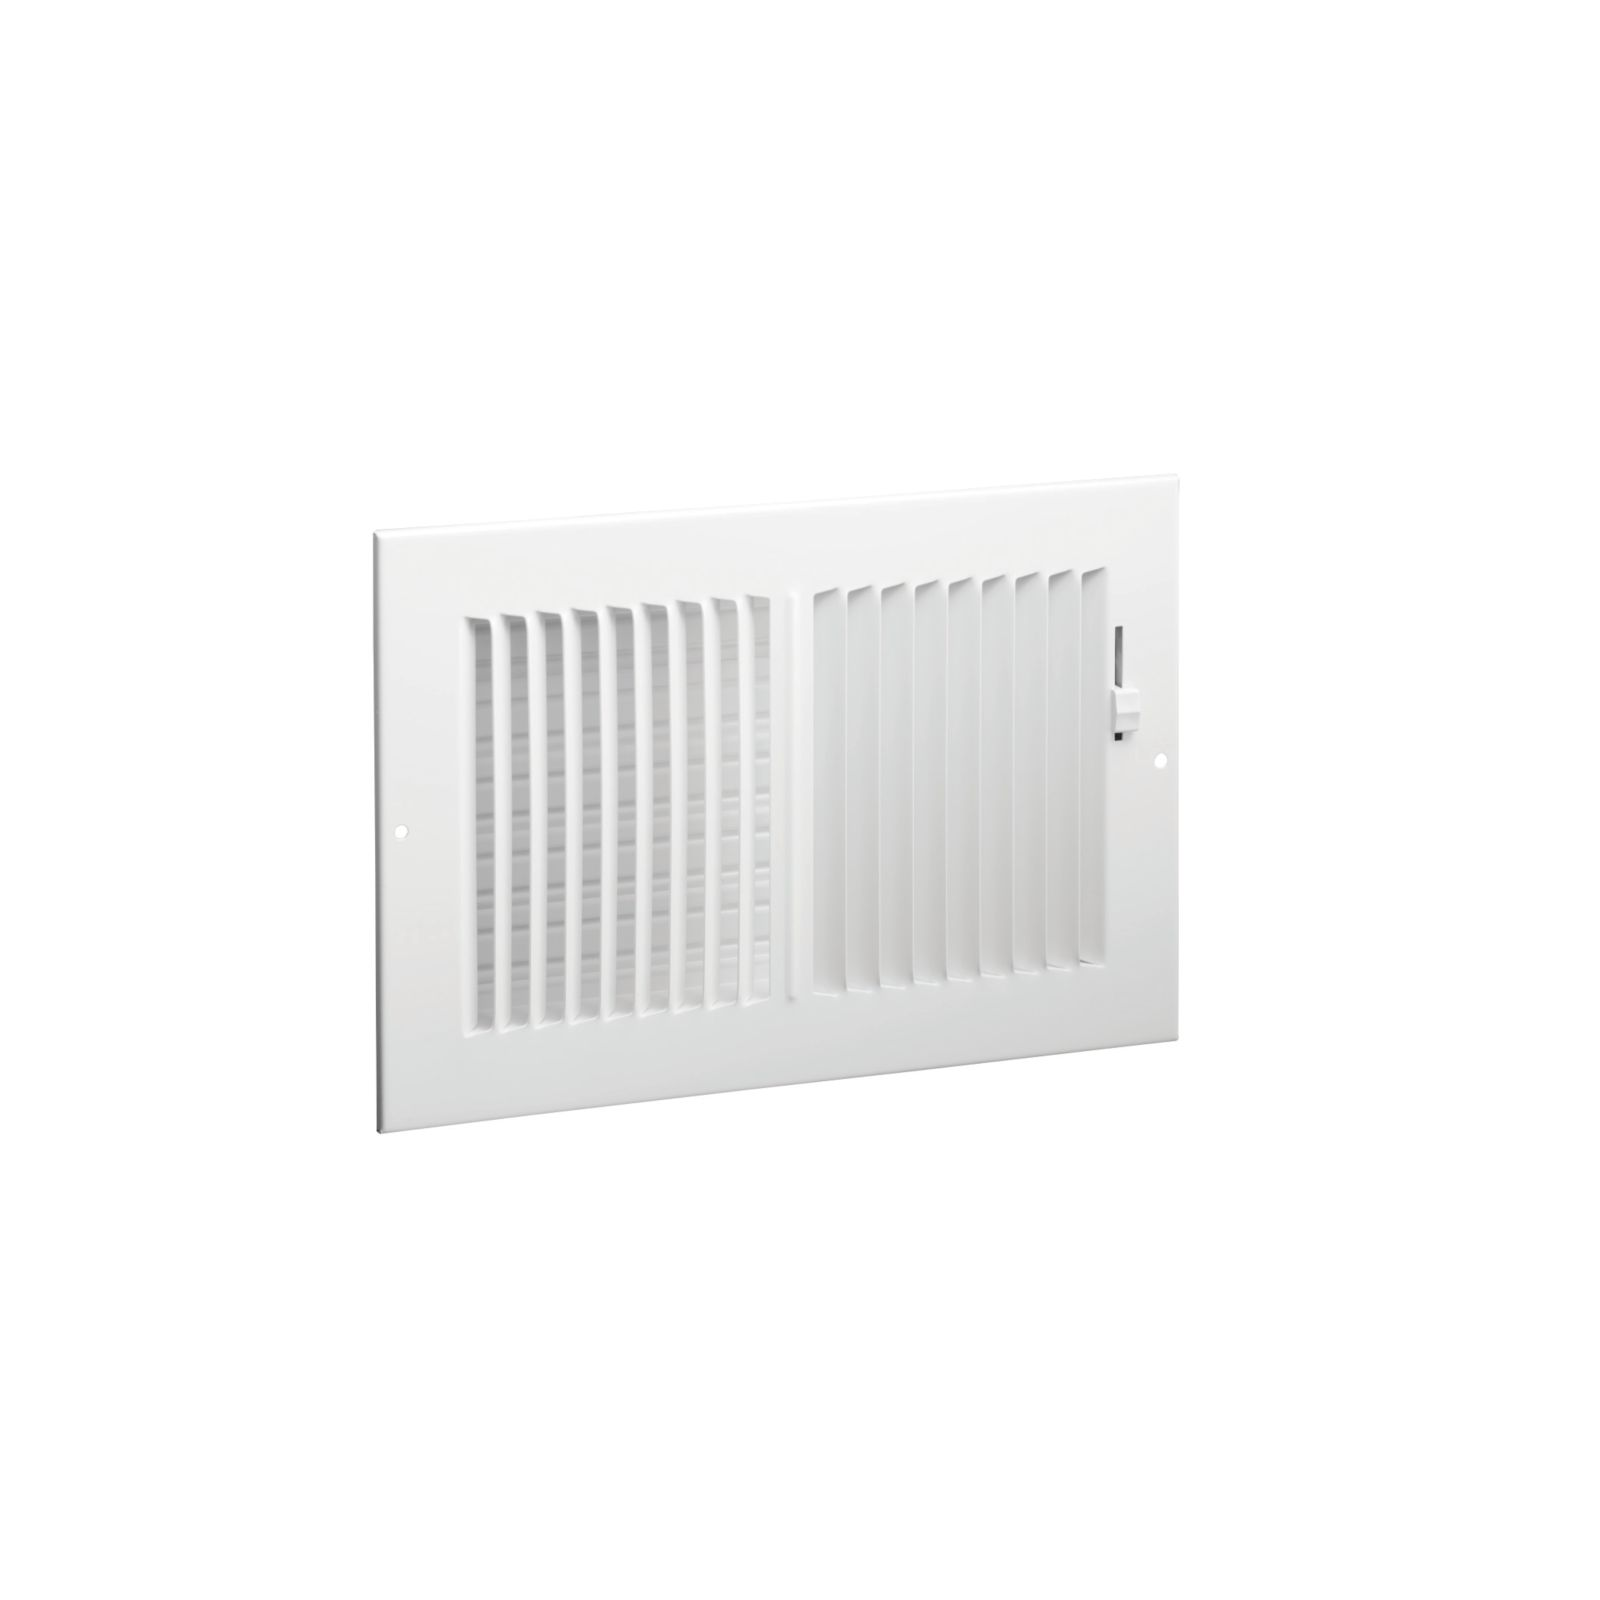 "Hart & Cooley 703908 - #682M Steel 2-Way Sidewall/Ceiling Register, Multi-Shutter Damper with Metal Handle, White, 10"" X 4"""